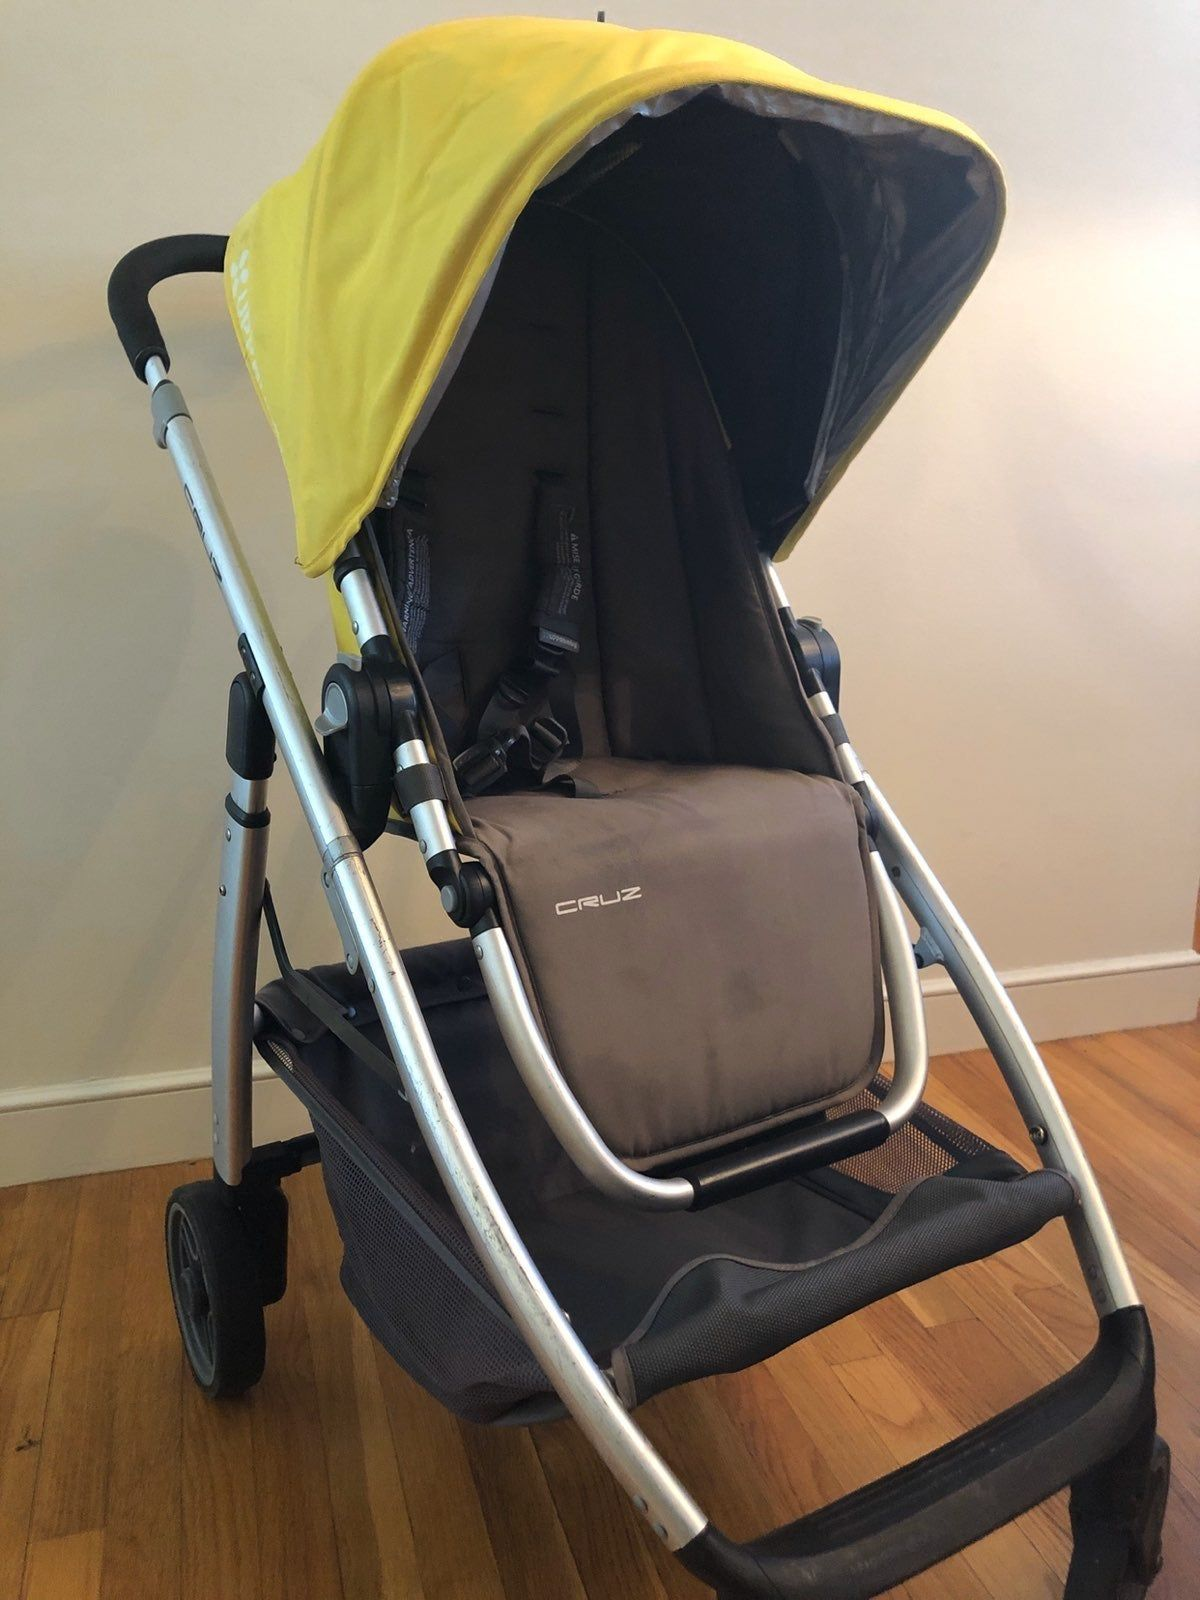 I have a 2015 UPPABABY CRUZ silver frame and yellow seat